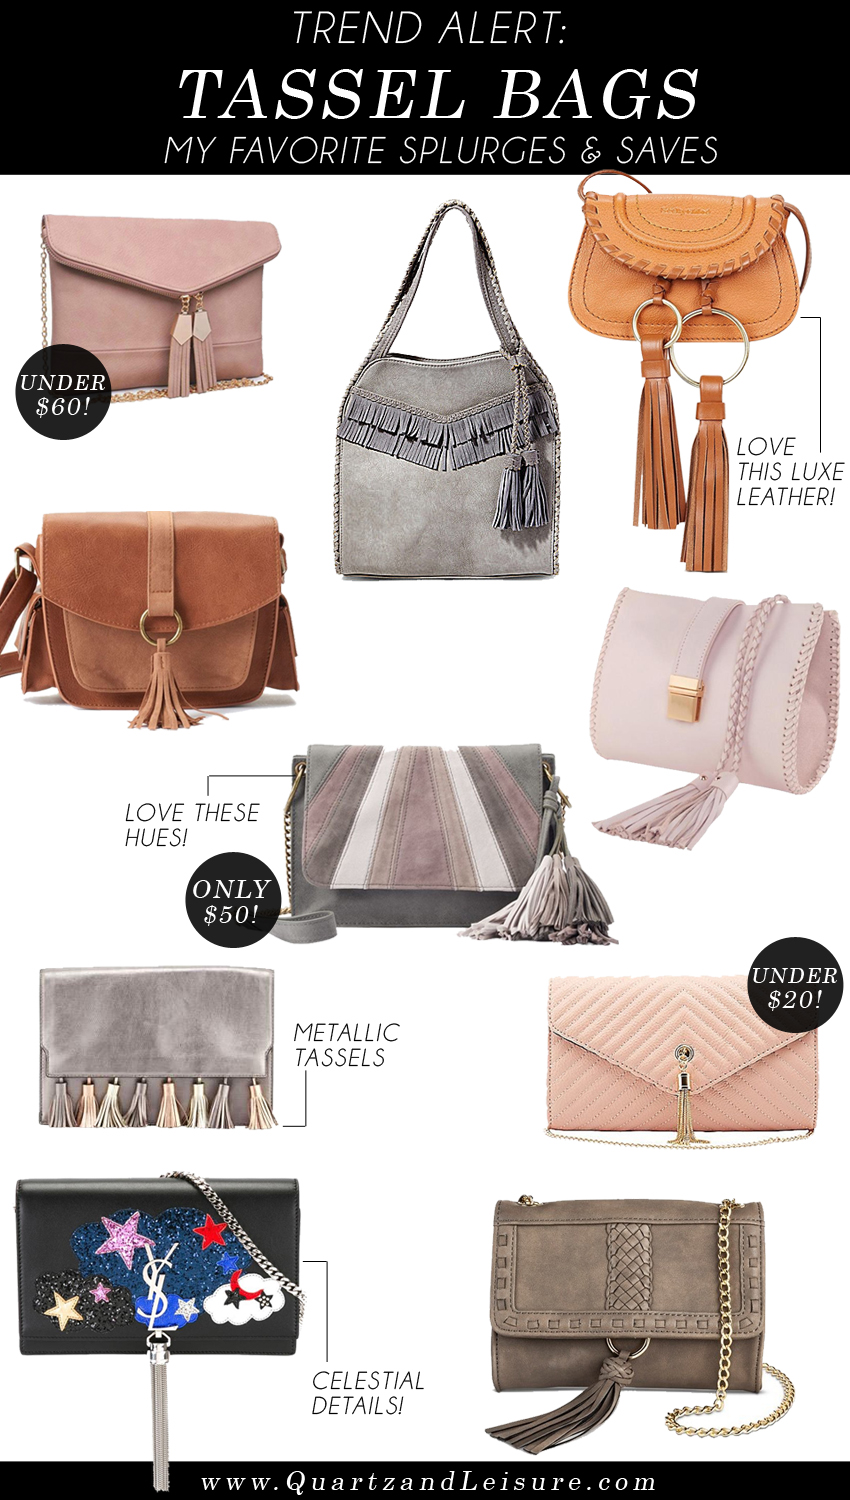 Tassel Bags - My Favorite Splurges & Saves - Quartz & Leisure